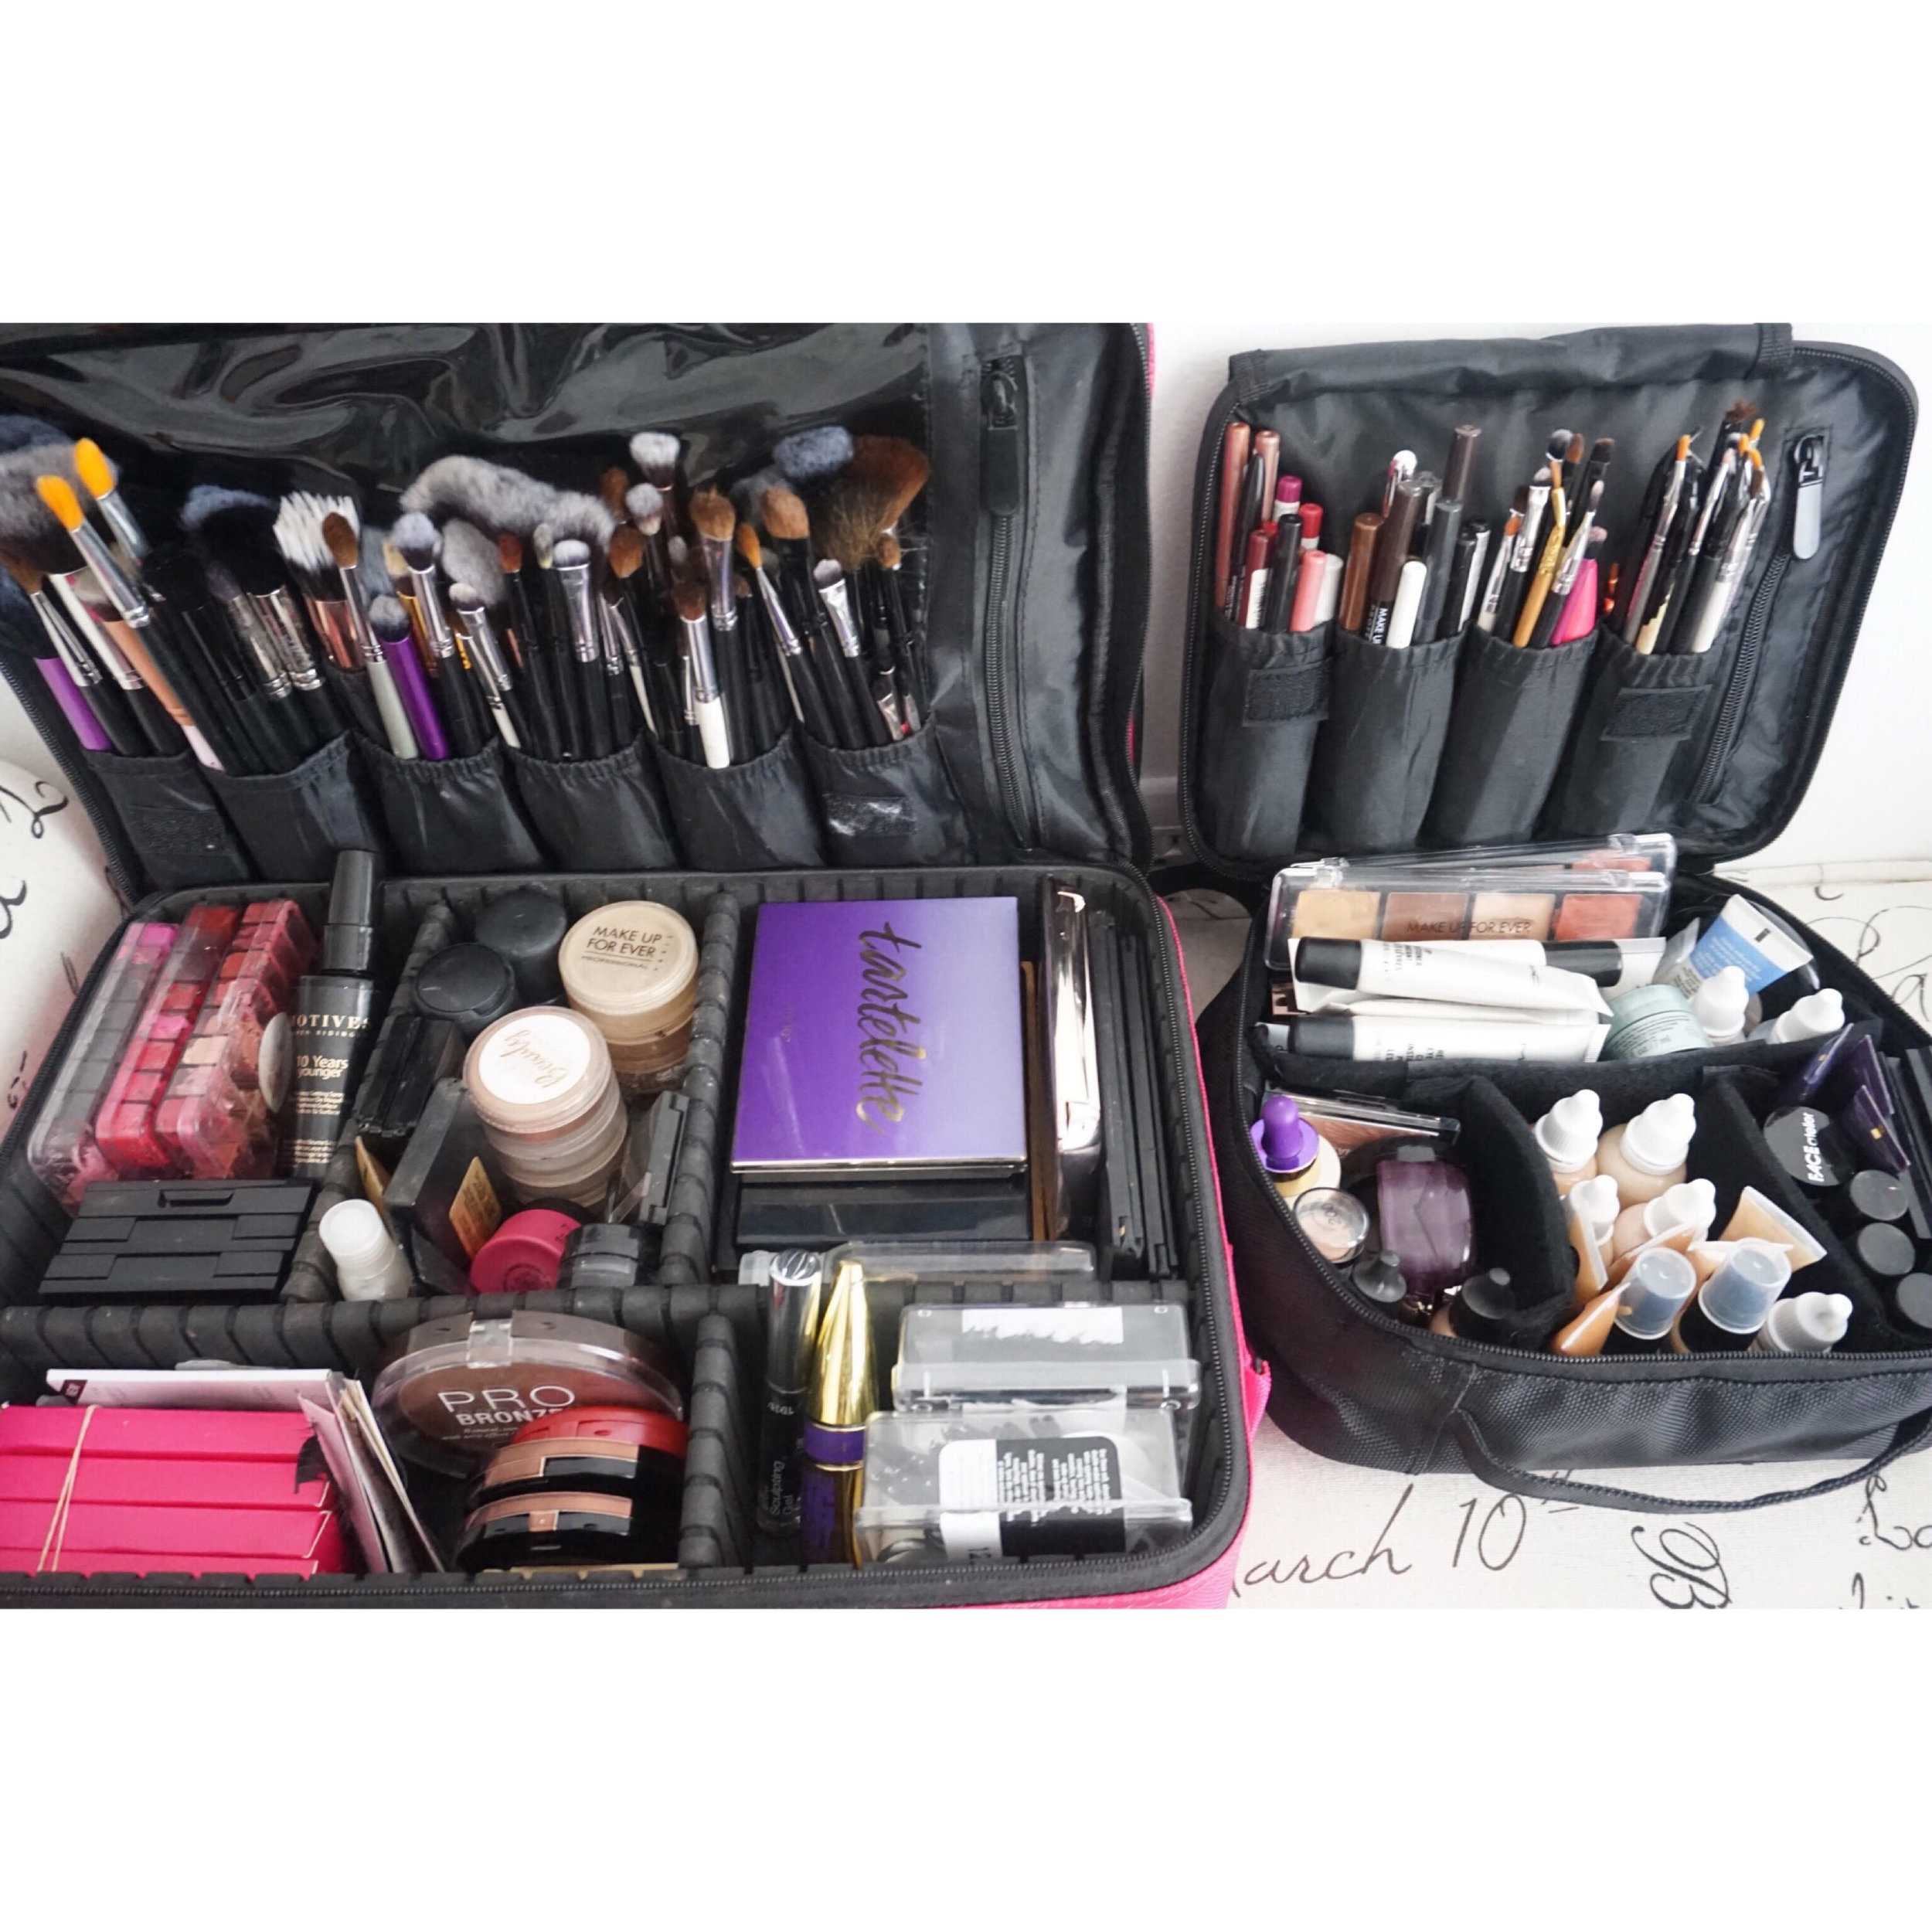 Another thing that is truly important to me in making booking flow easily is how I pack my makeup kit. I consider myself to be a very organized person so functionality is a must for me. It didn't take me overnight to get to this kit (which I am super proud of!). This has taken much trial and error.